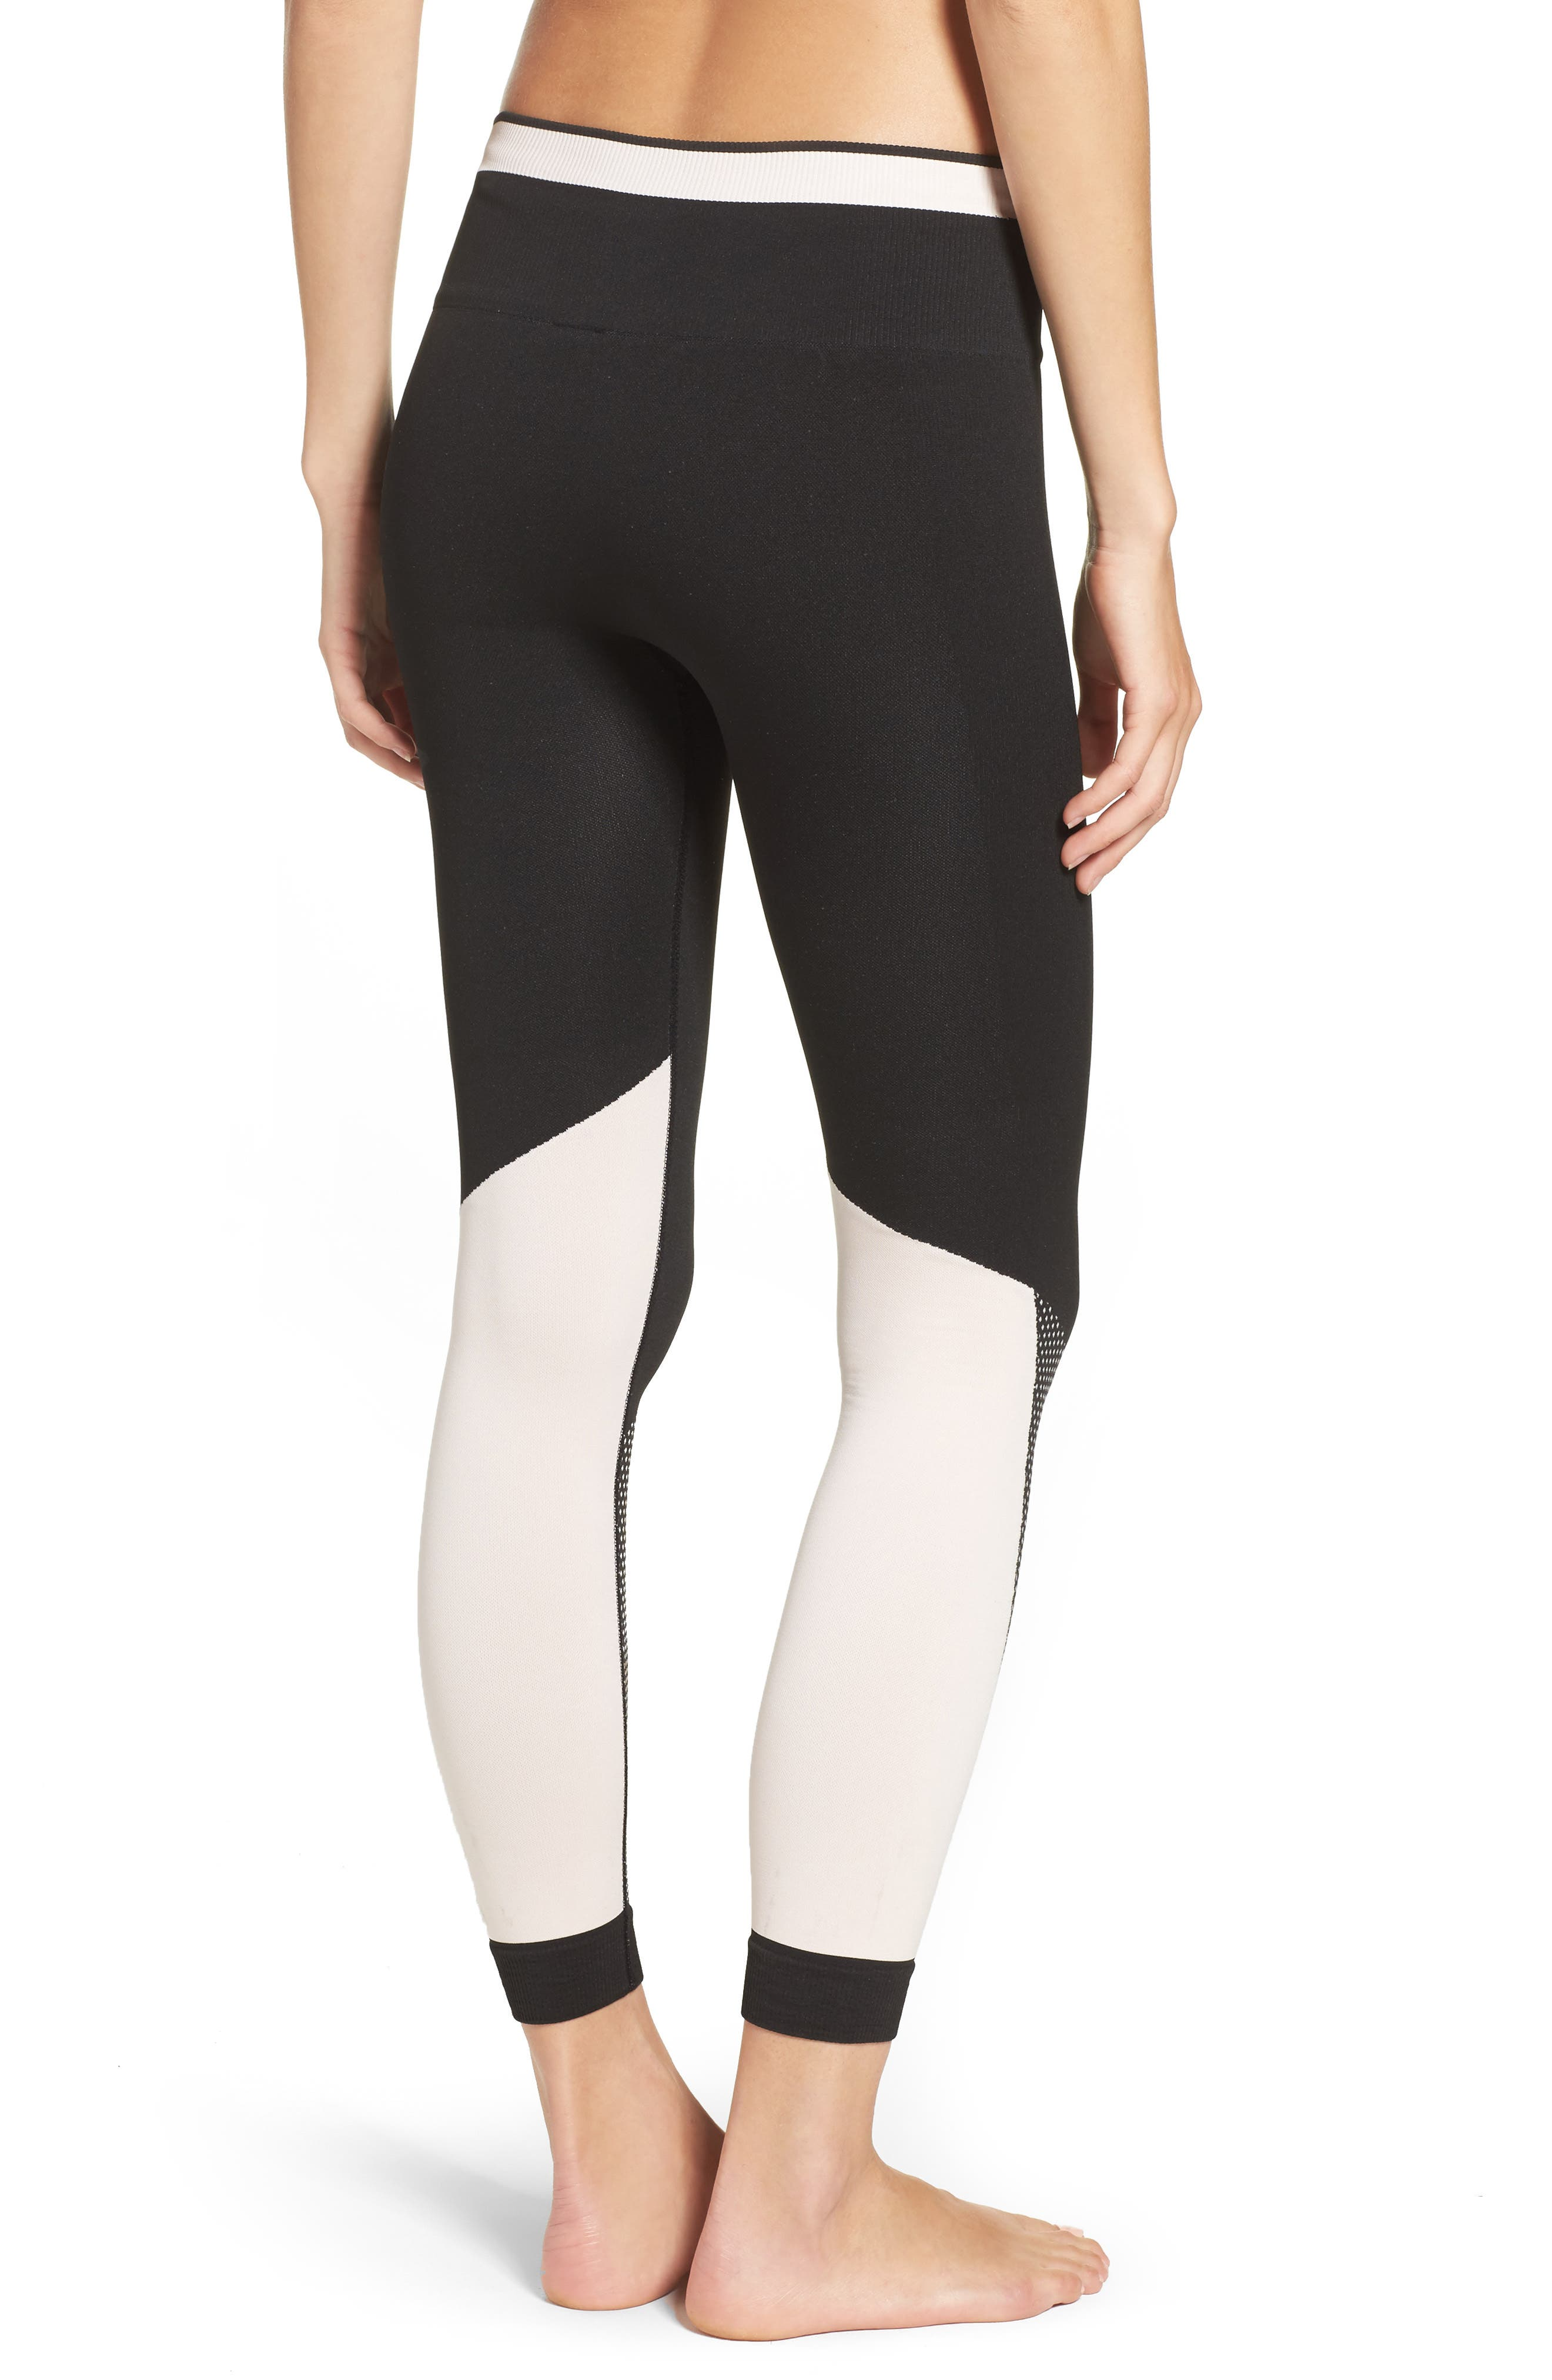 Ace Performance Tights,                             Alternate thumbnail 4, color,